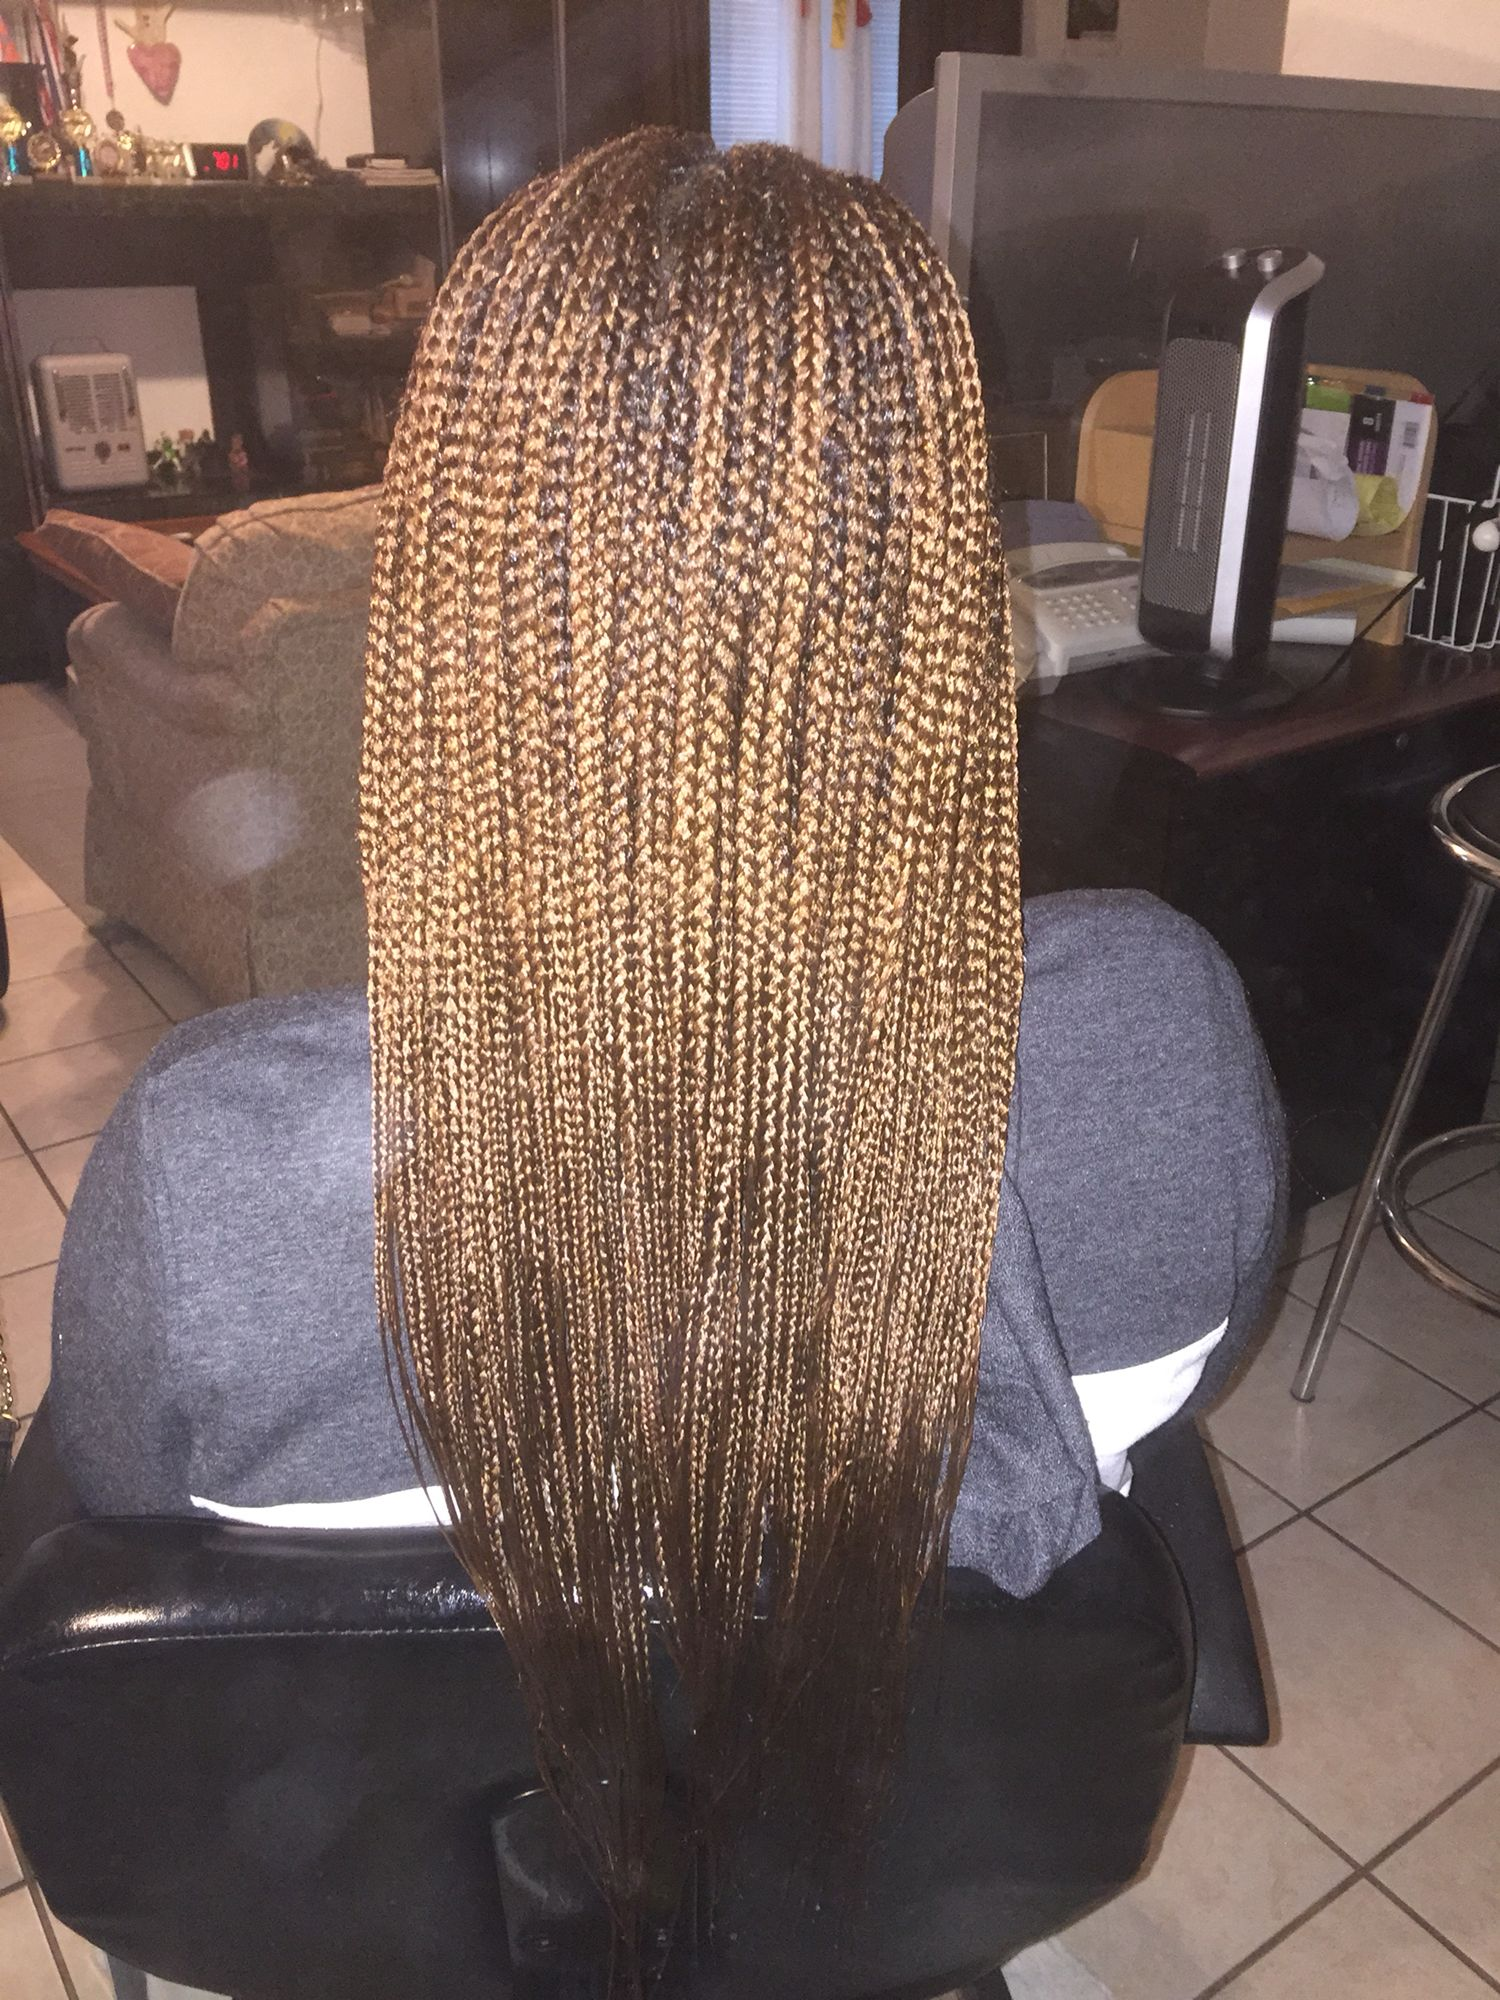 Box Braids With 30 Mid Back Length Small Small Medium Size